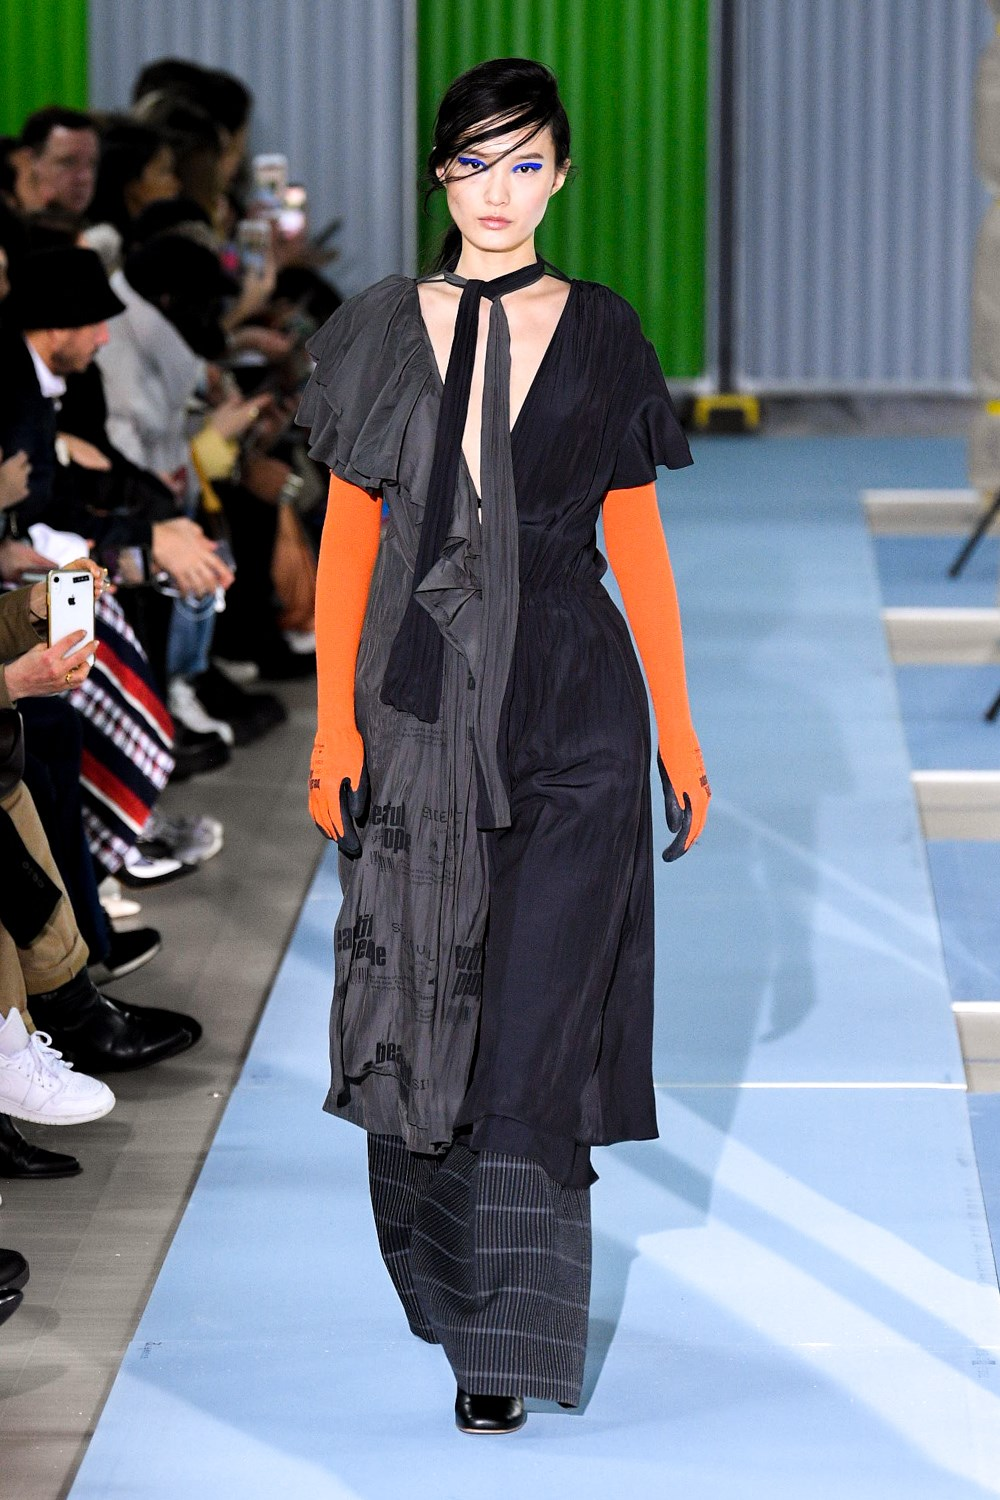 Deconstructed Fall 2020 Trend from Paris